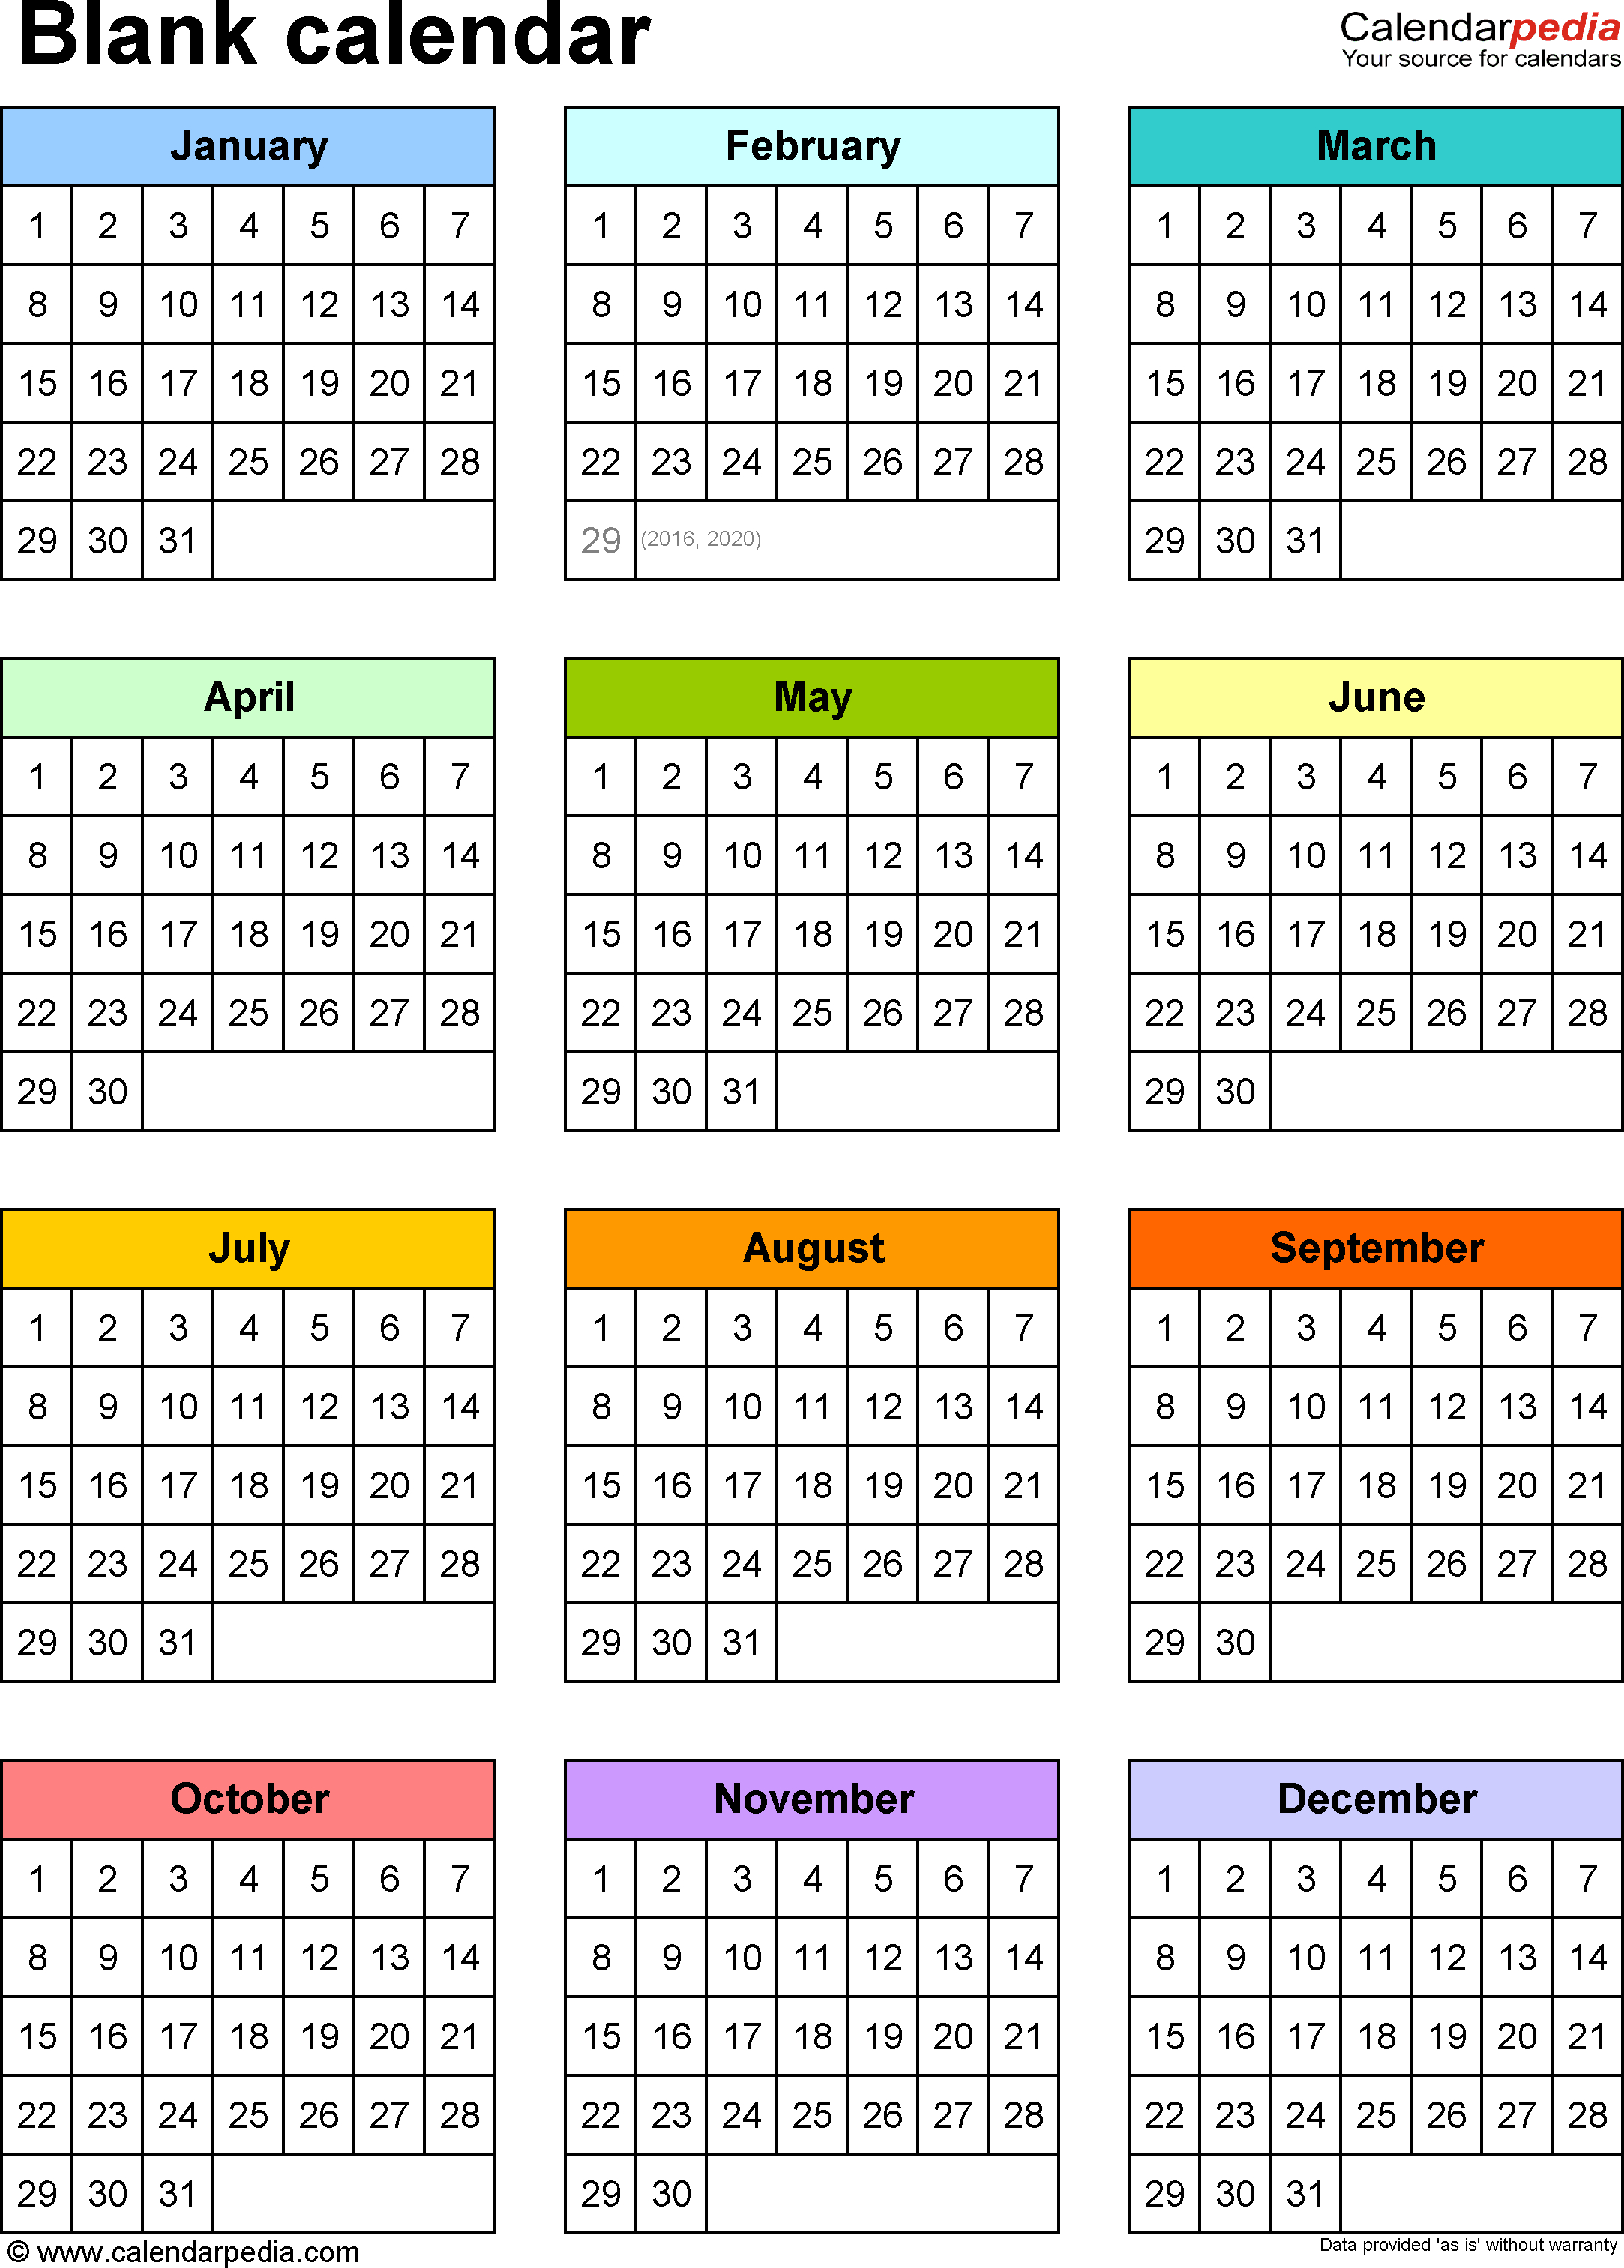 Blank Calendar - 9 Free Printable Microsoft Word Templates within Blank Year At A Glance Calendar Template